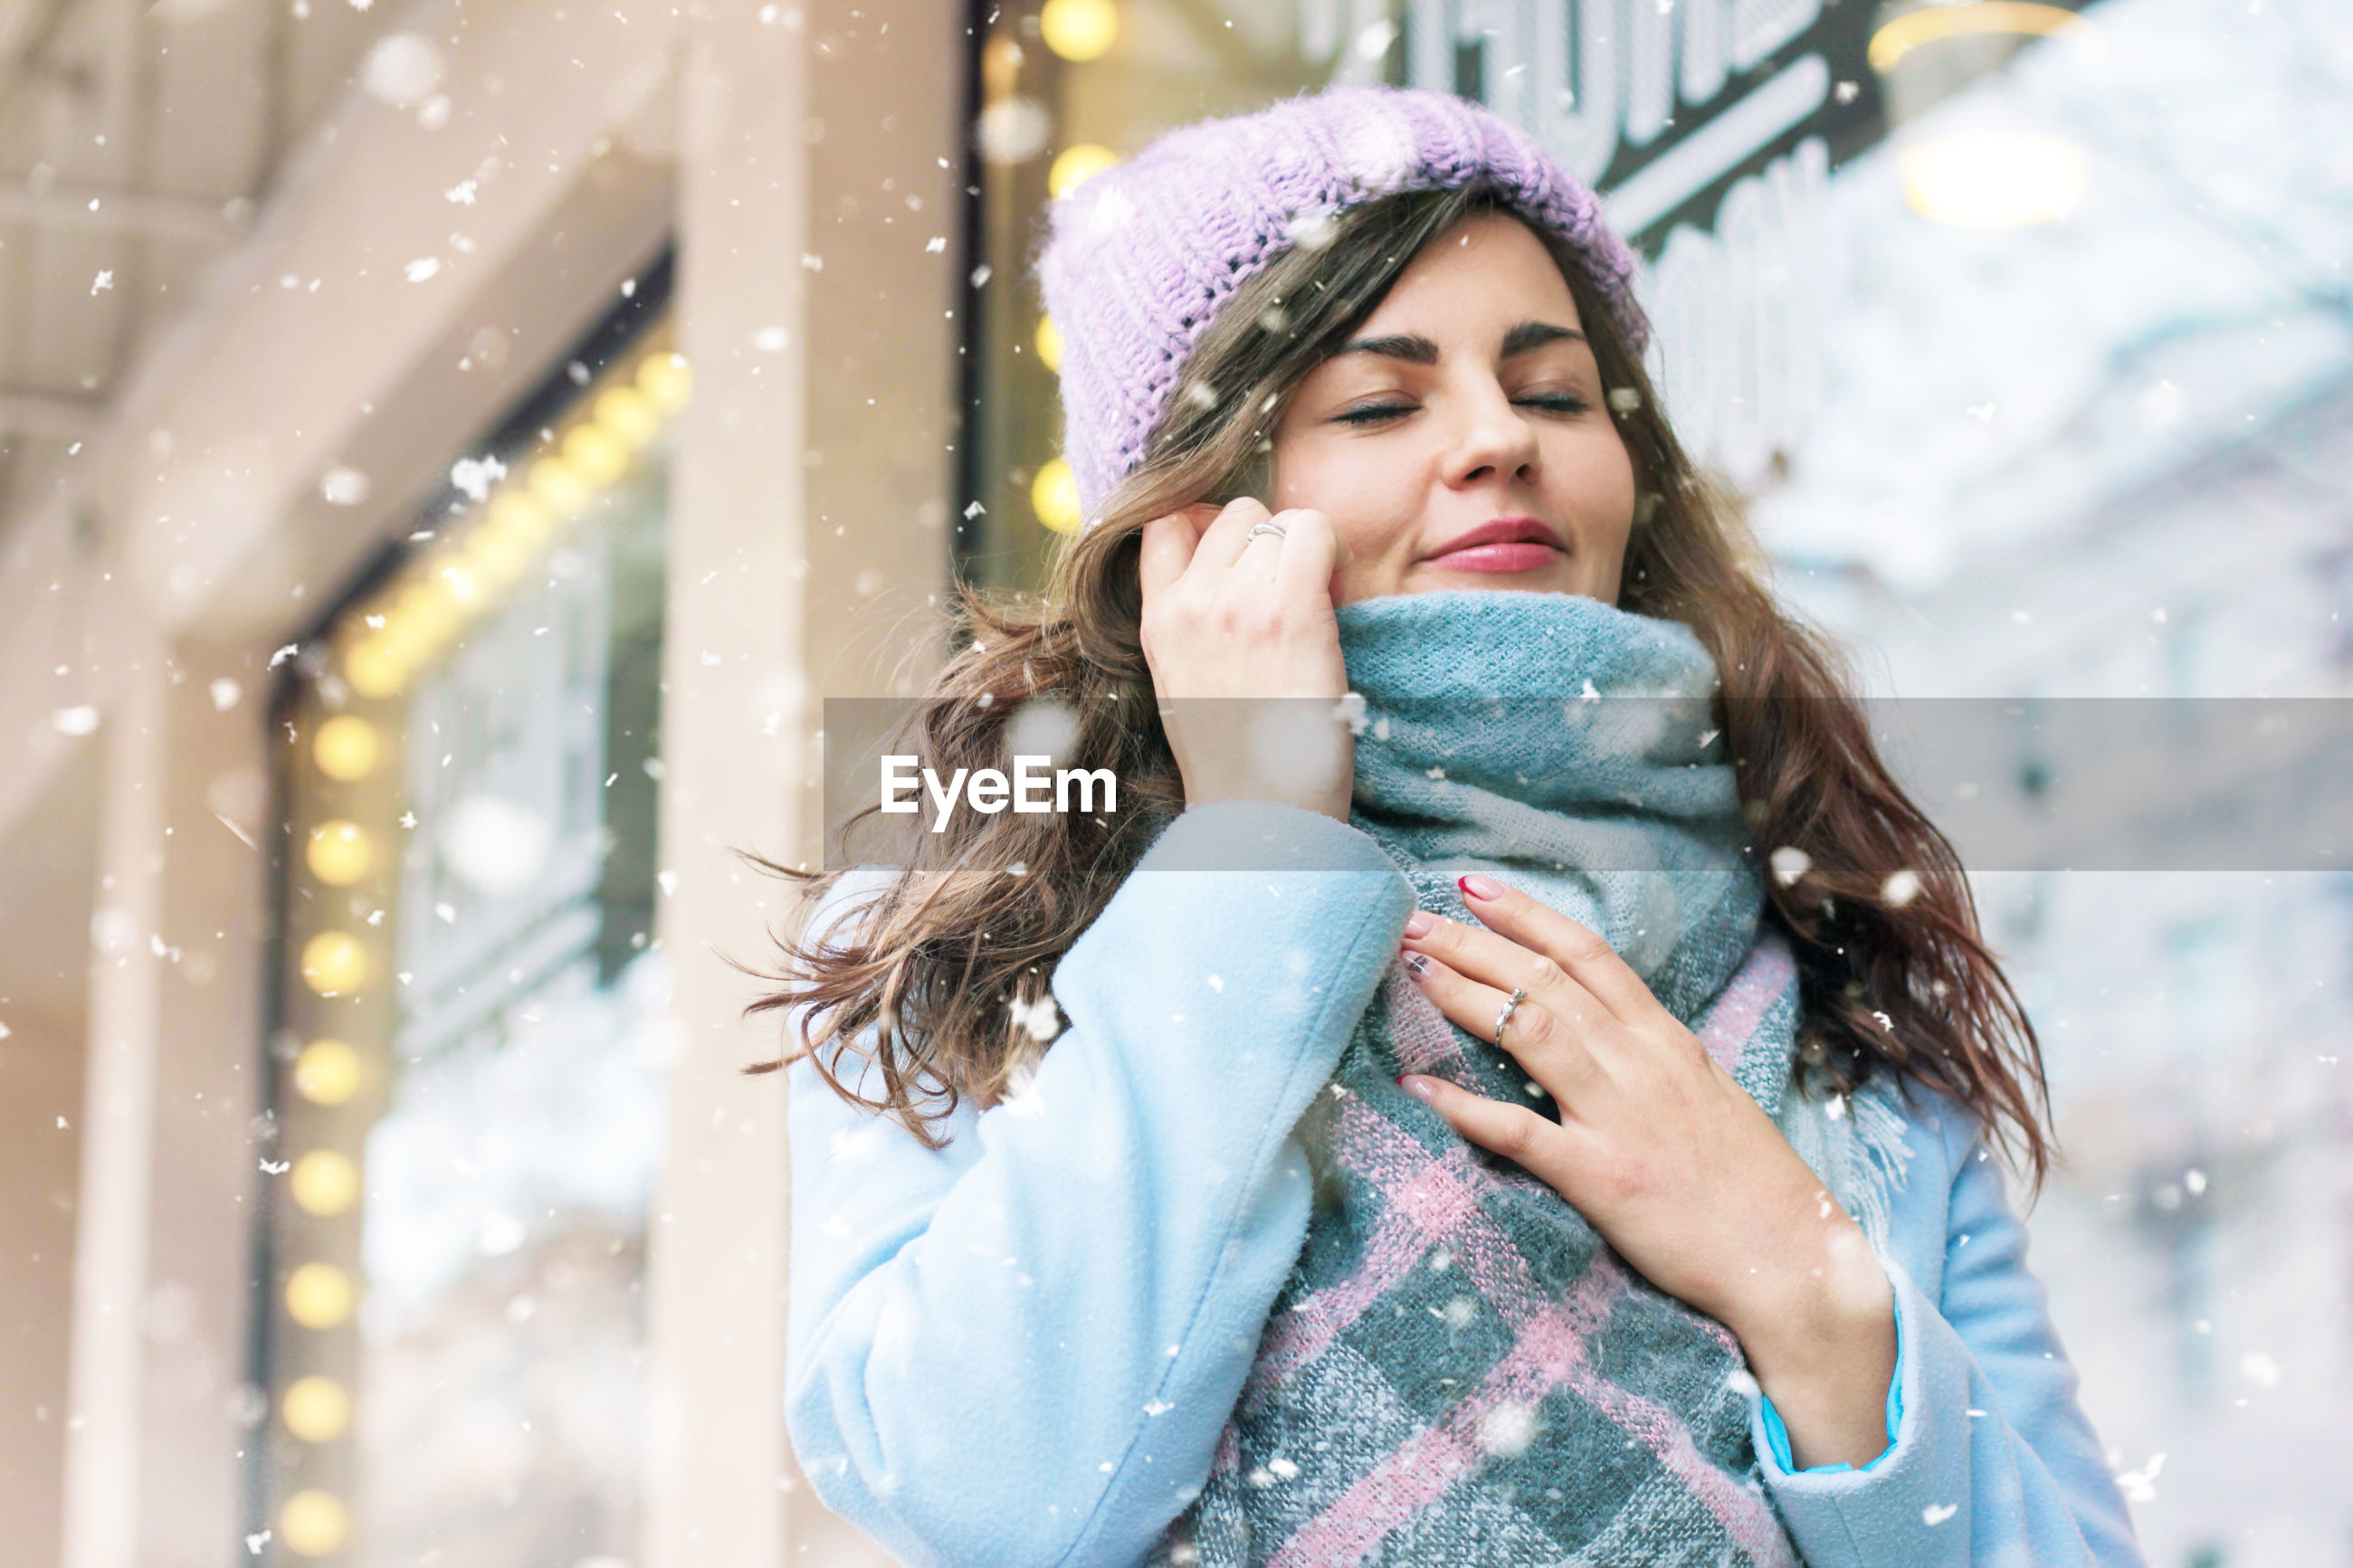 Young woman with eyes closed standing against building during snowfall